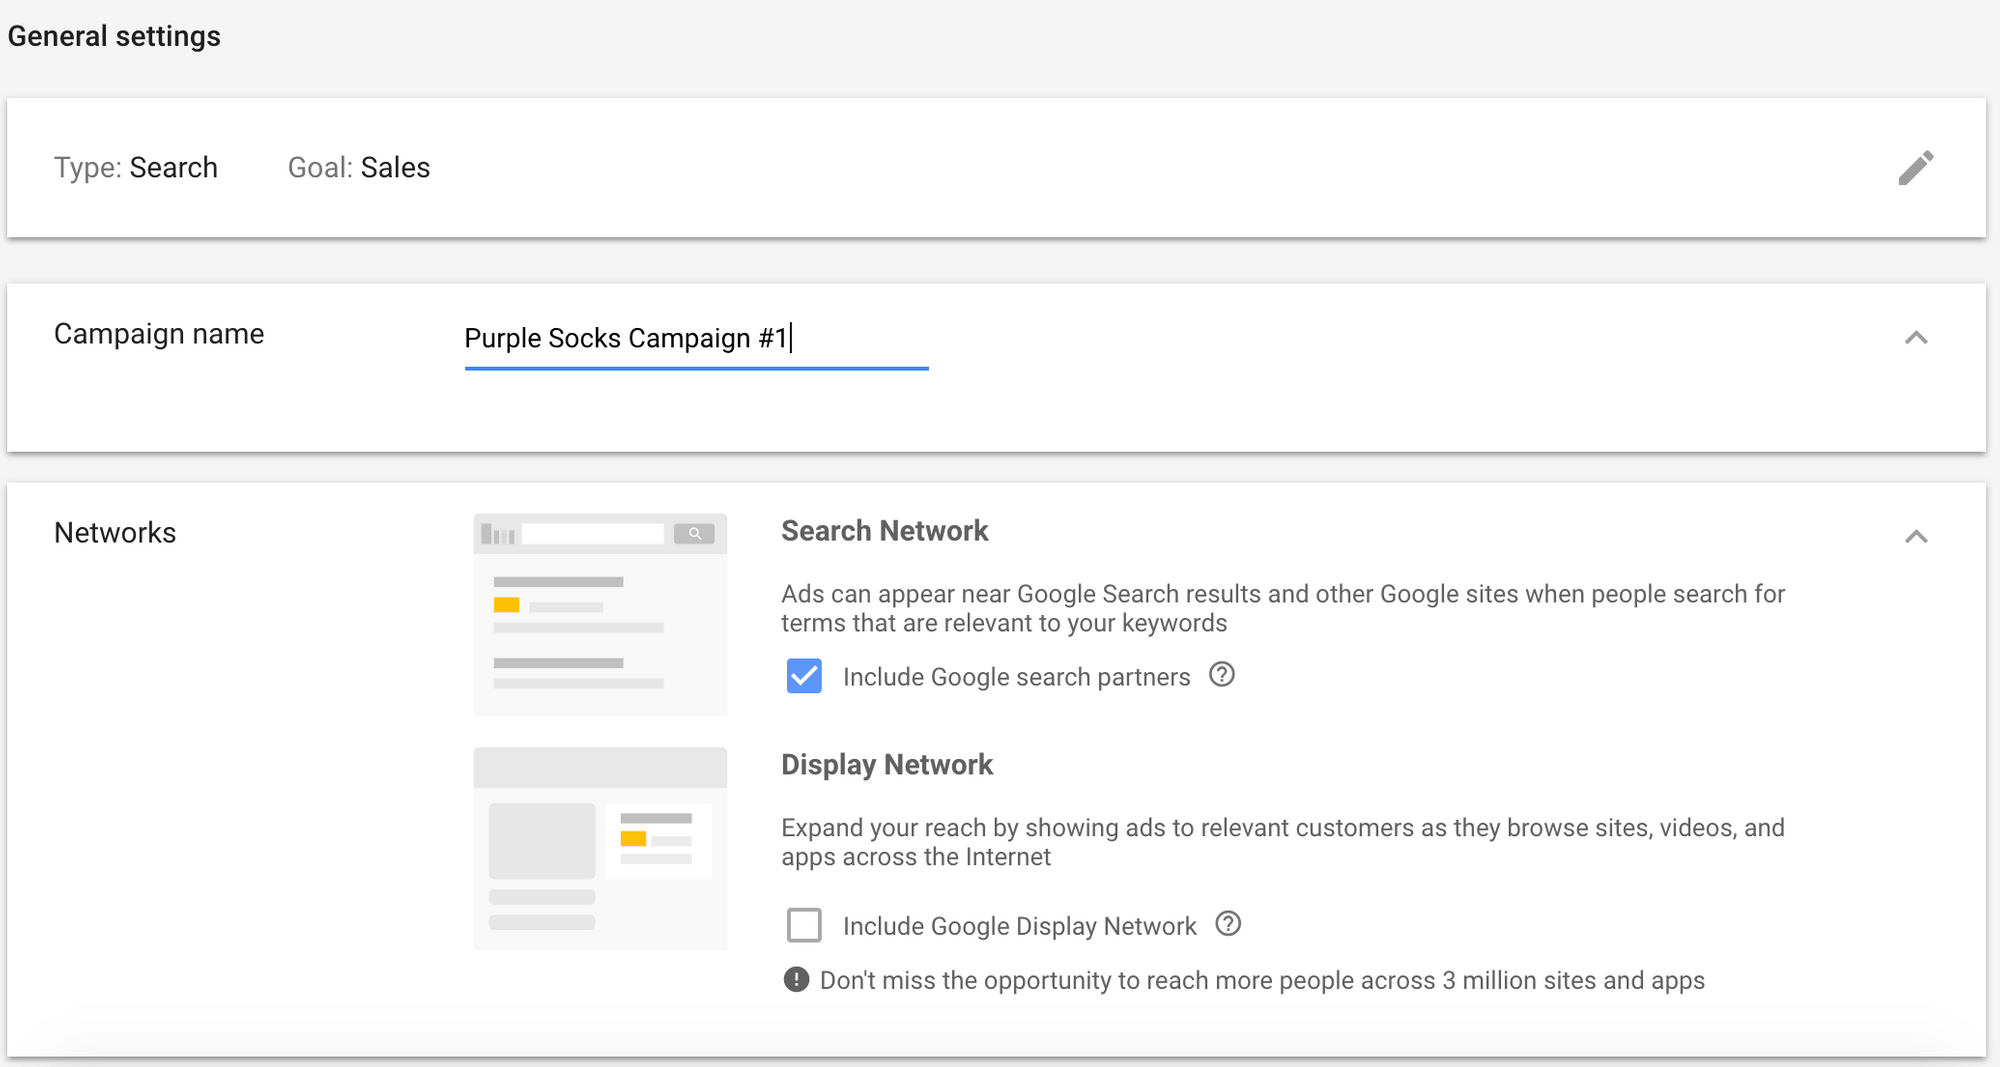 Google Ads Campaign Name and Networks